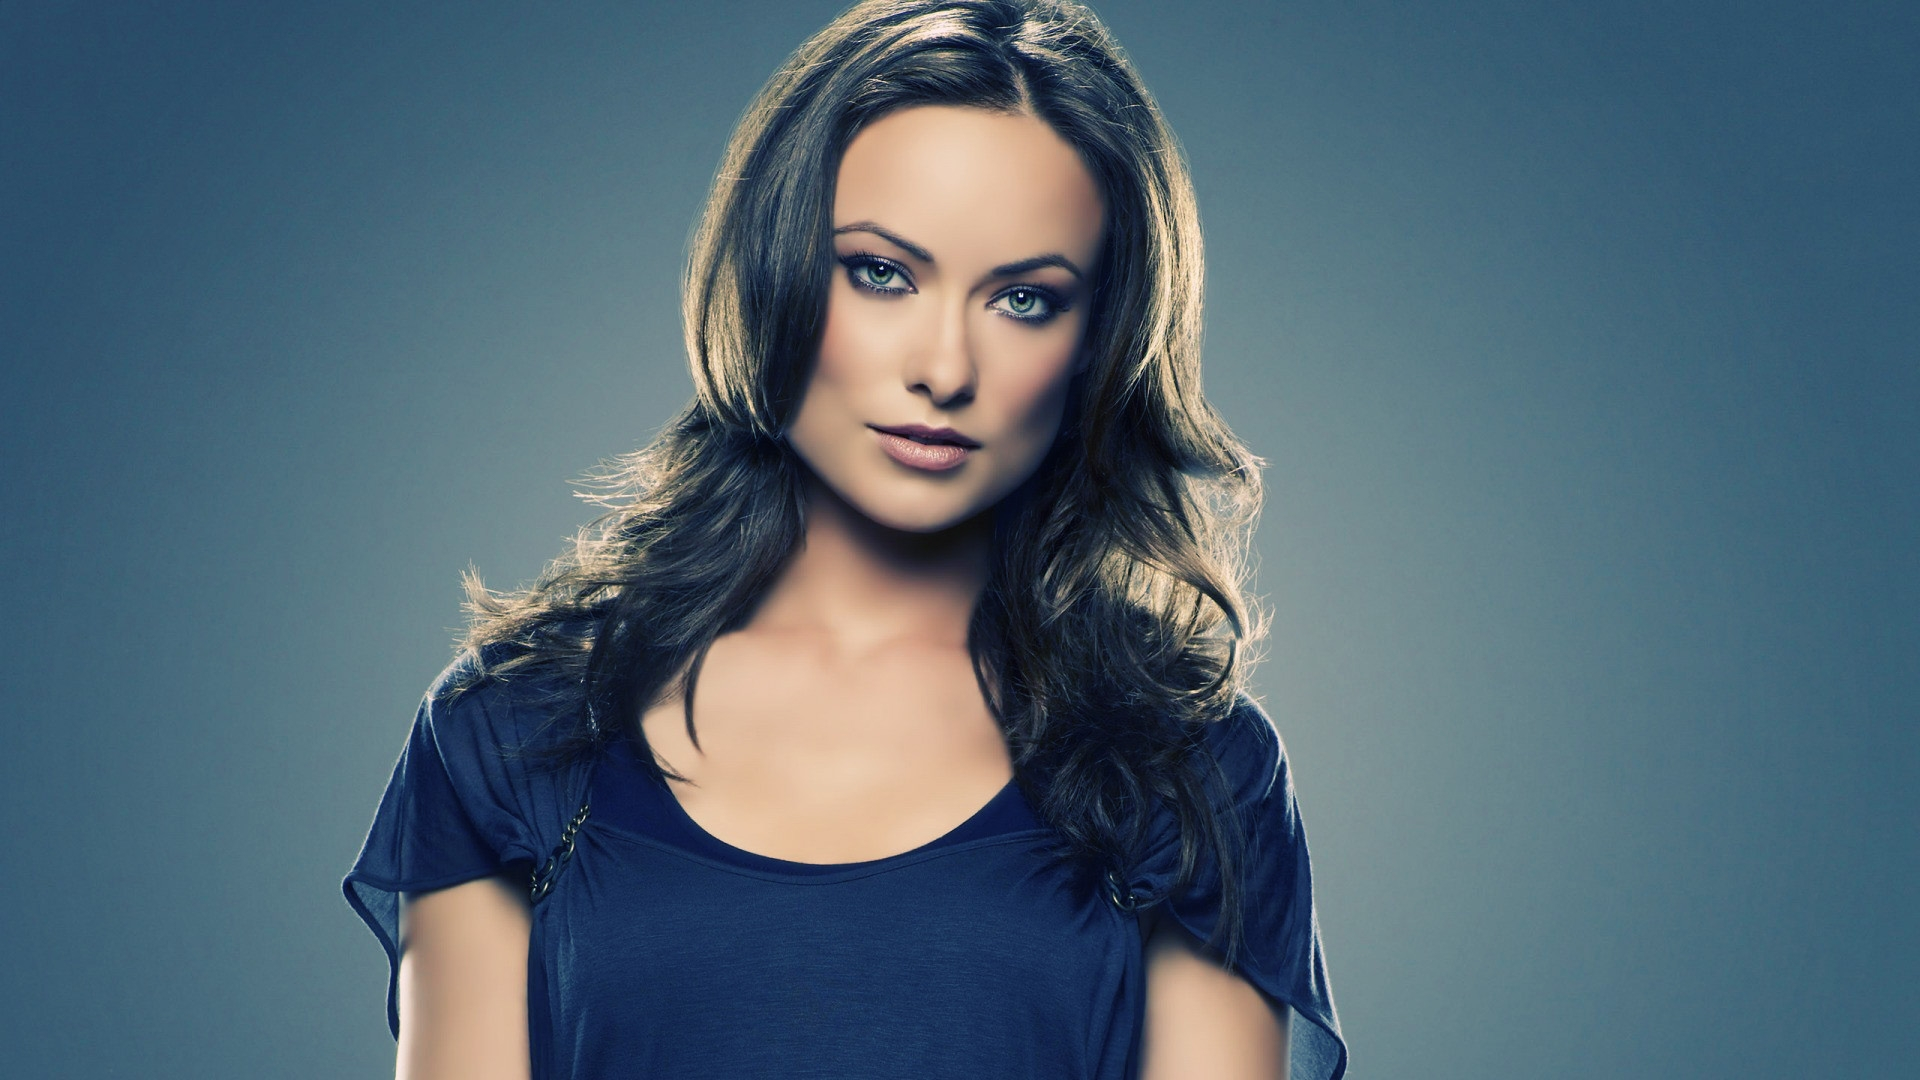 Olivia wilde wallpapers high resolution and quality download - High resolution wallpaper celebrity ...